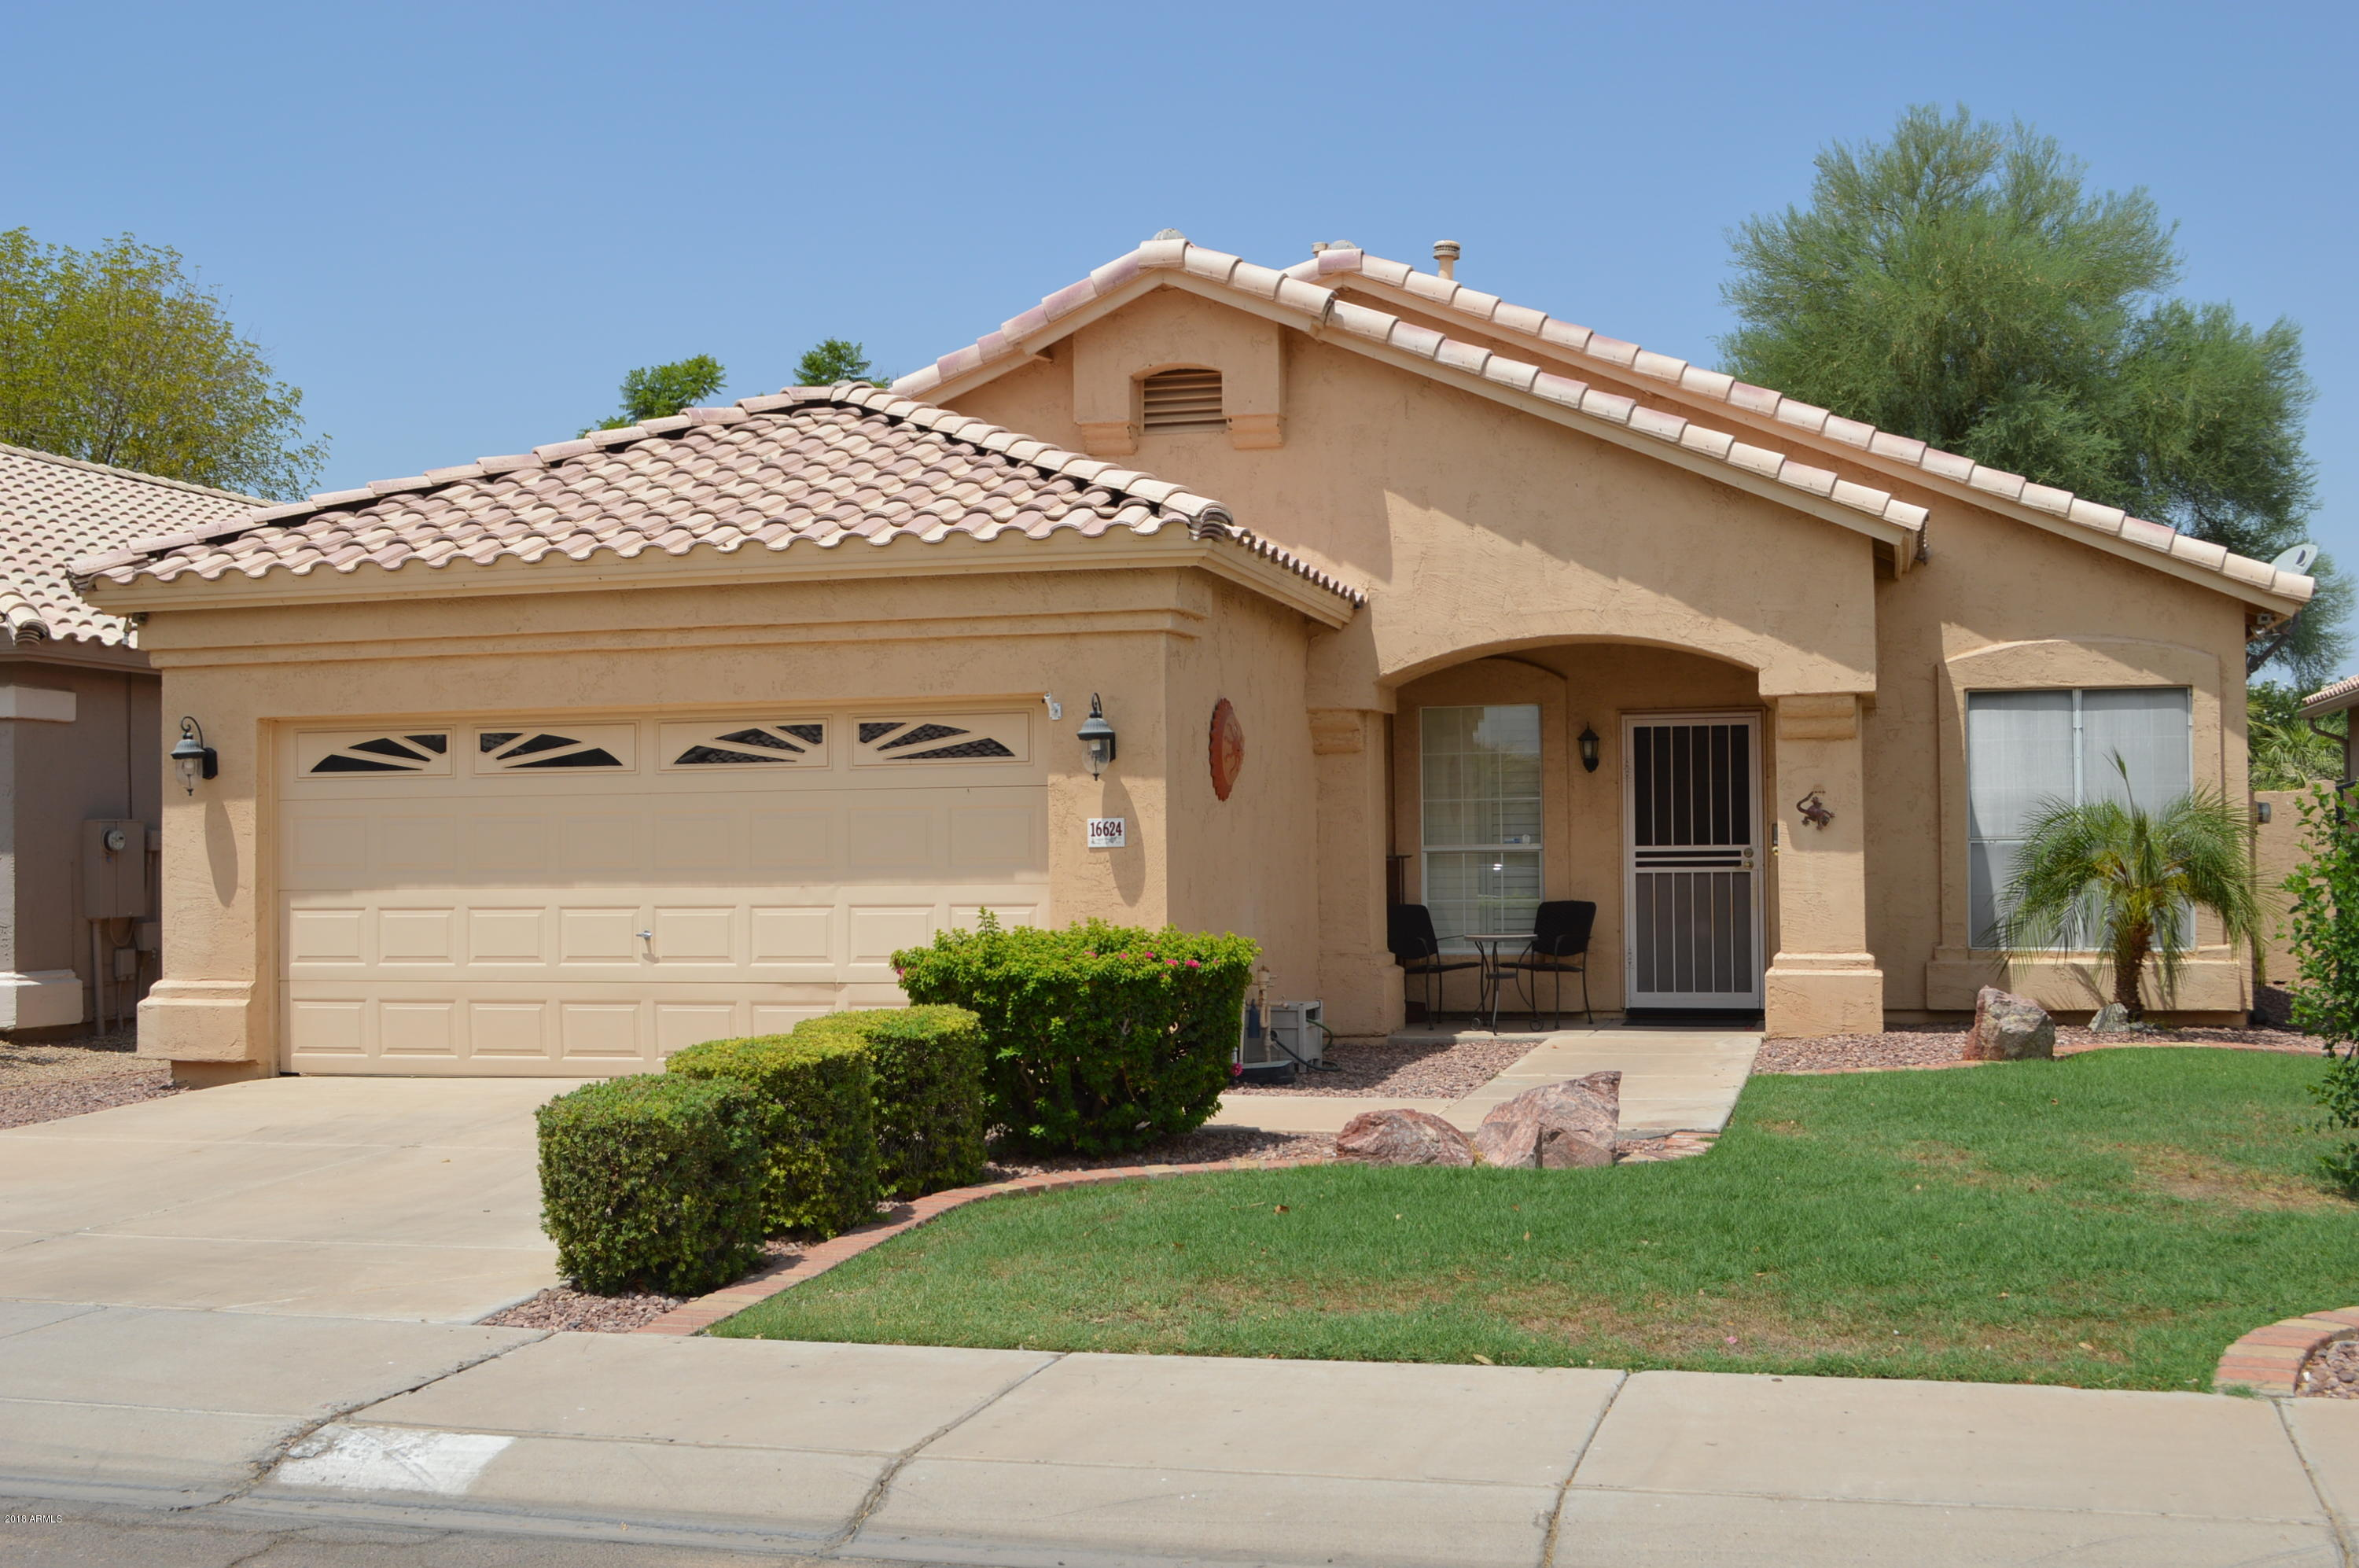 Photo for 16624 N 10th Drive, Phoenix, AZ 85023 (MLS # 5791692)